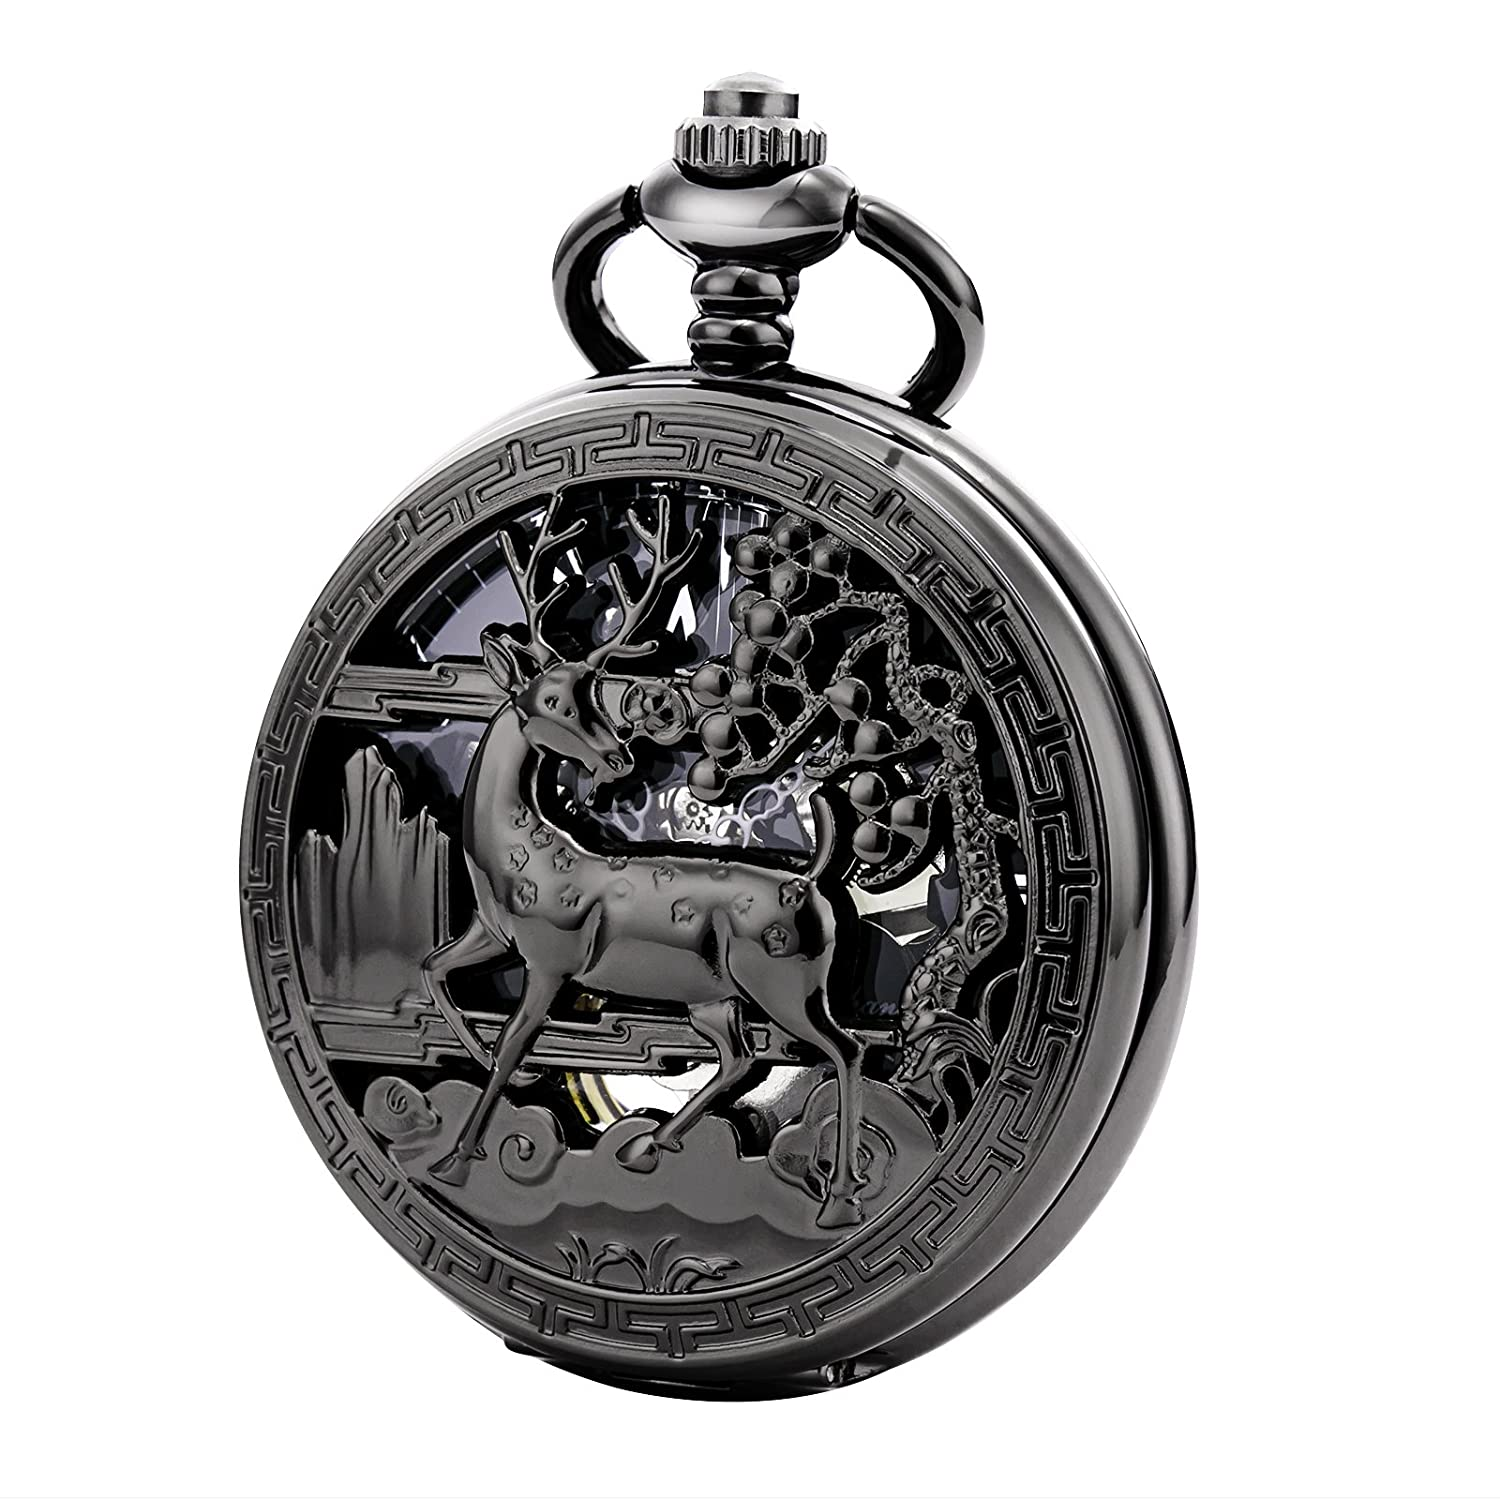 TREEWETO Vintage Pocket Watch Mechanical Double Cover Hollow Case Skeleton Steampunk Deer Case Men Women, Black